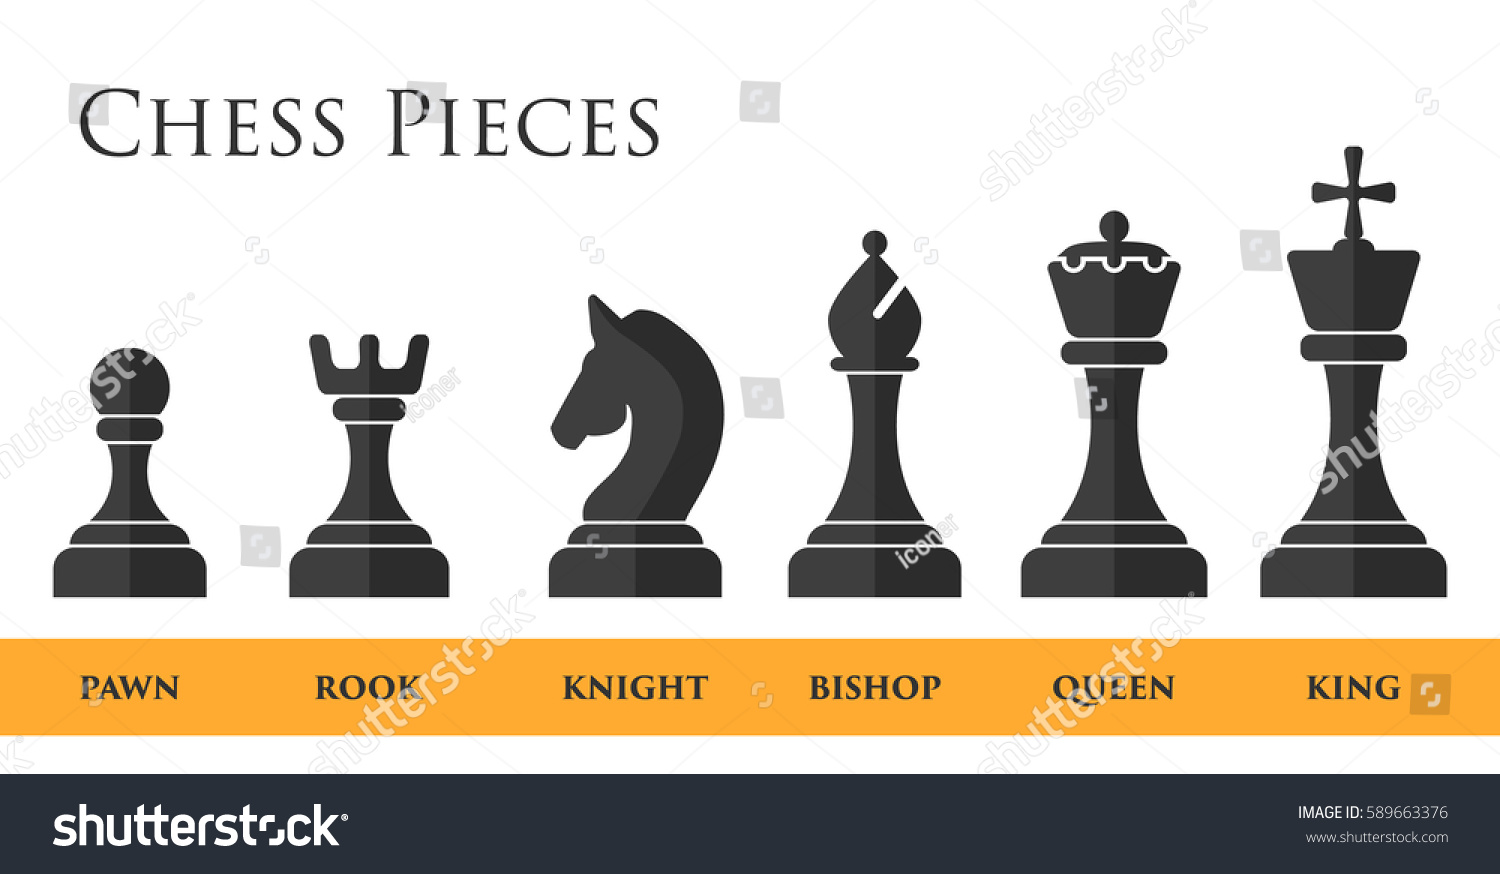 Chess pieces name list - Bitcoin generator wiki